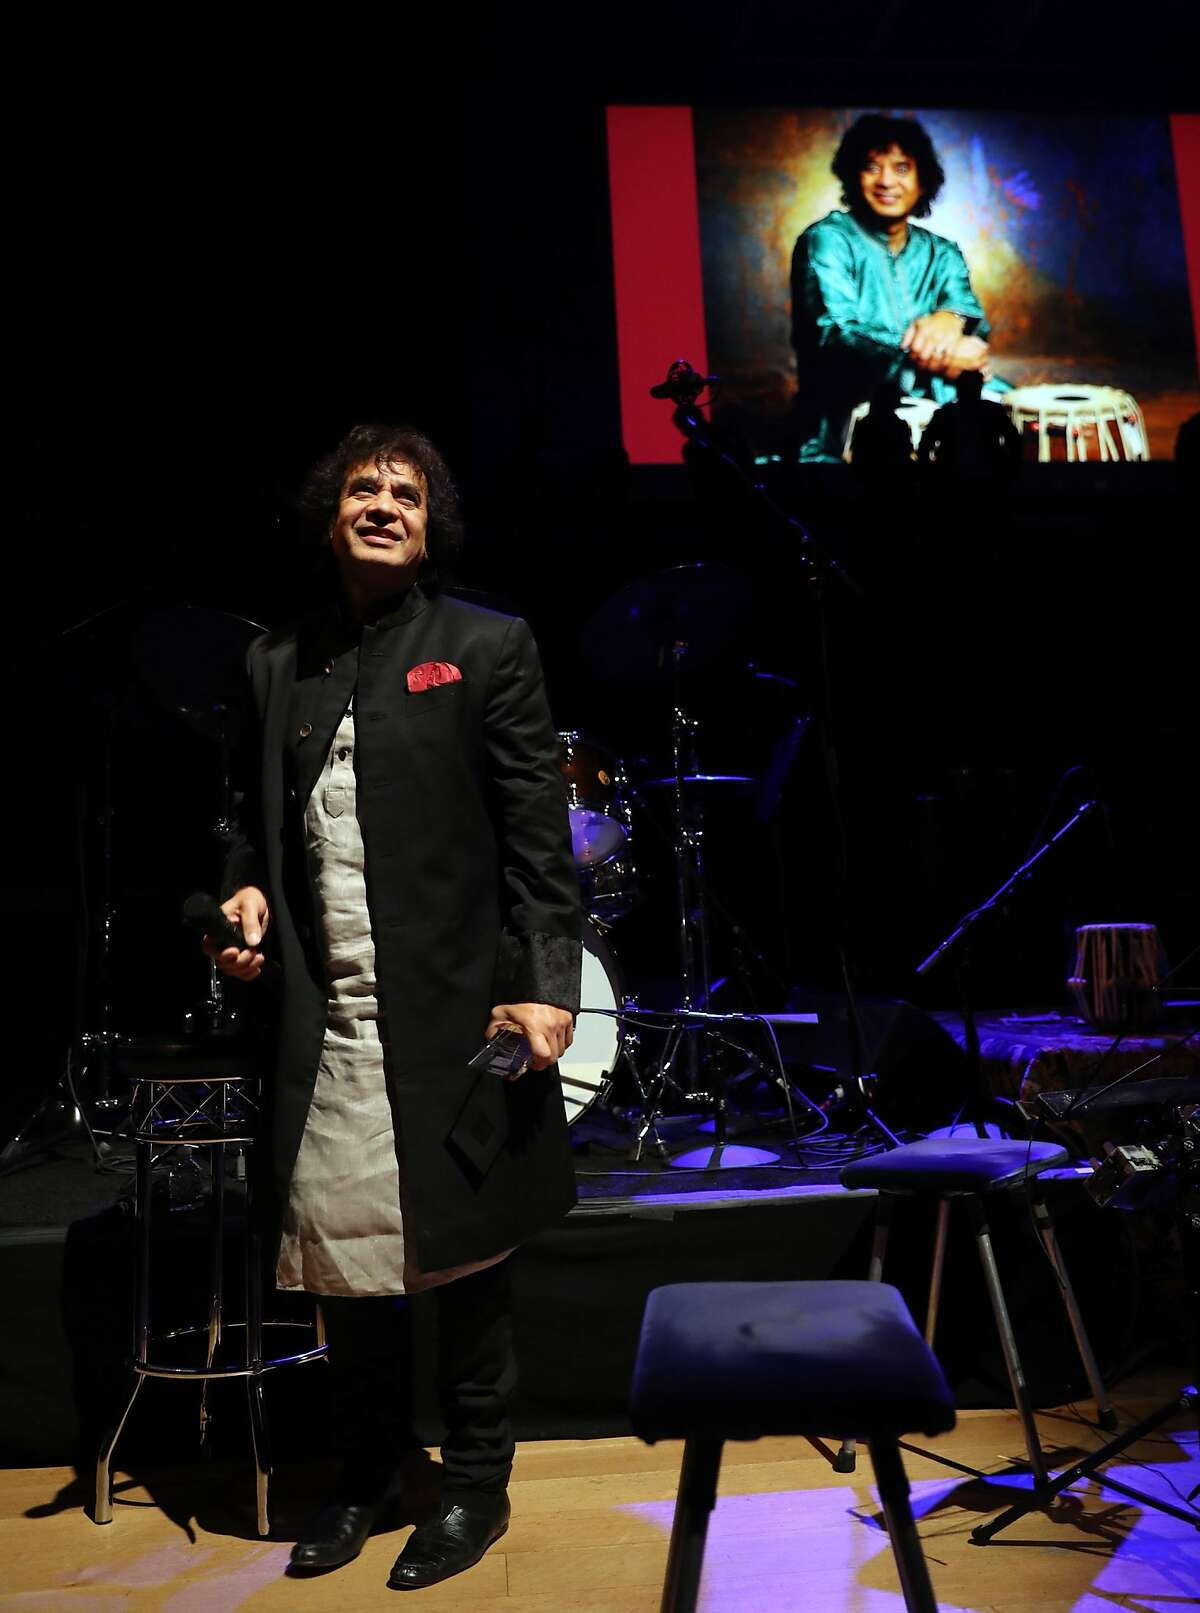 Percussionist Zakir Hussain speaks to the audience after being awarded SFJAZZ Lifetime Achievement Award during SFJazz Gala in San Francisco, Calif., on Wednesday, January 18, 2017.